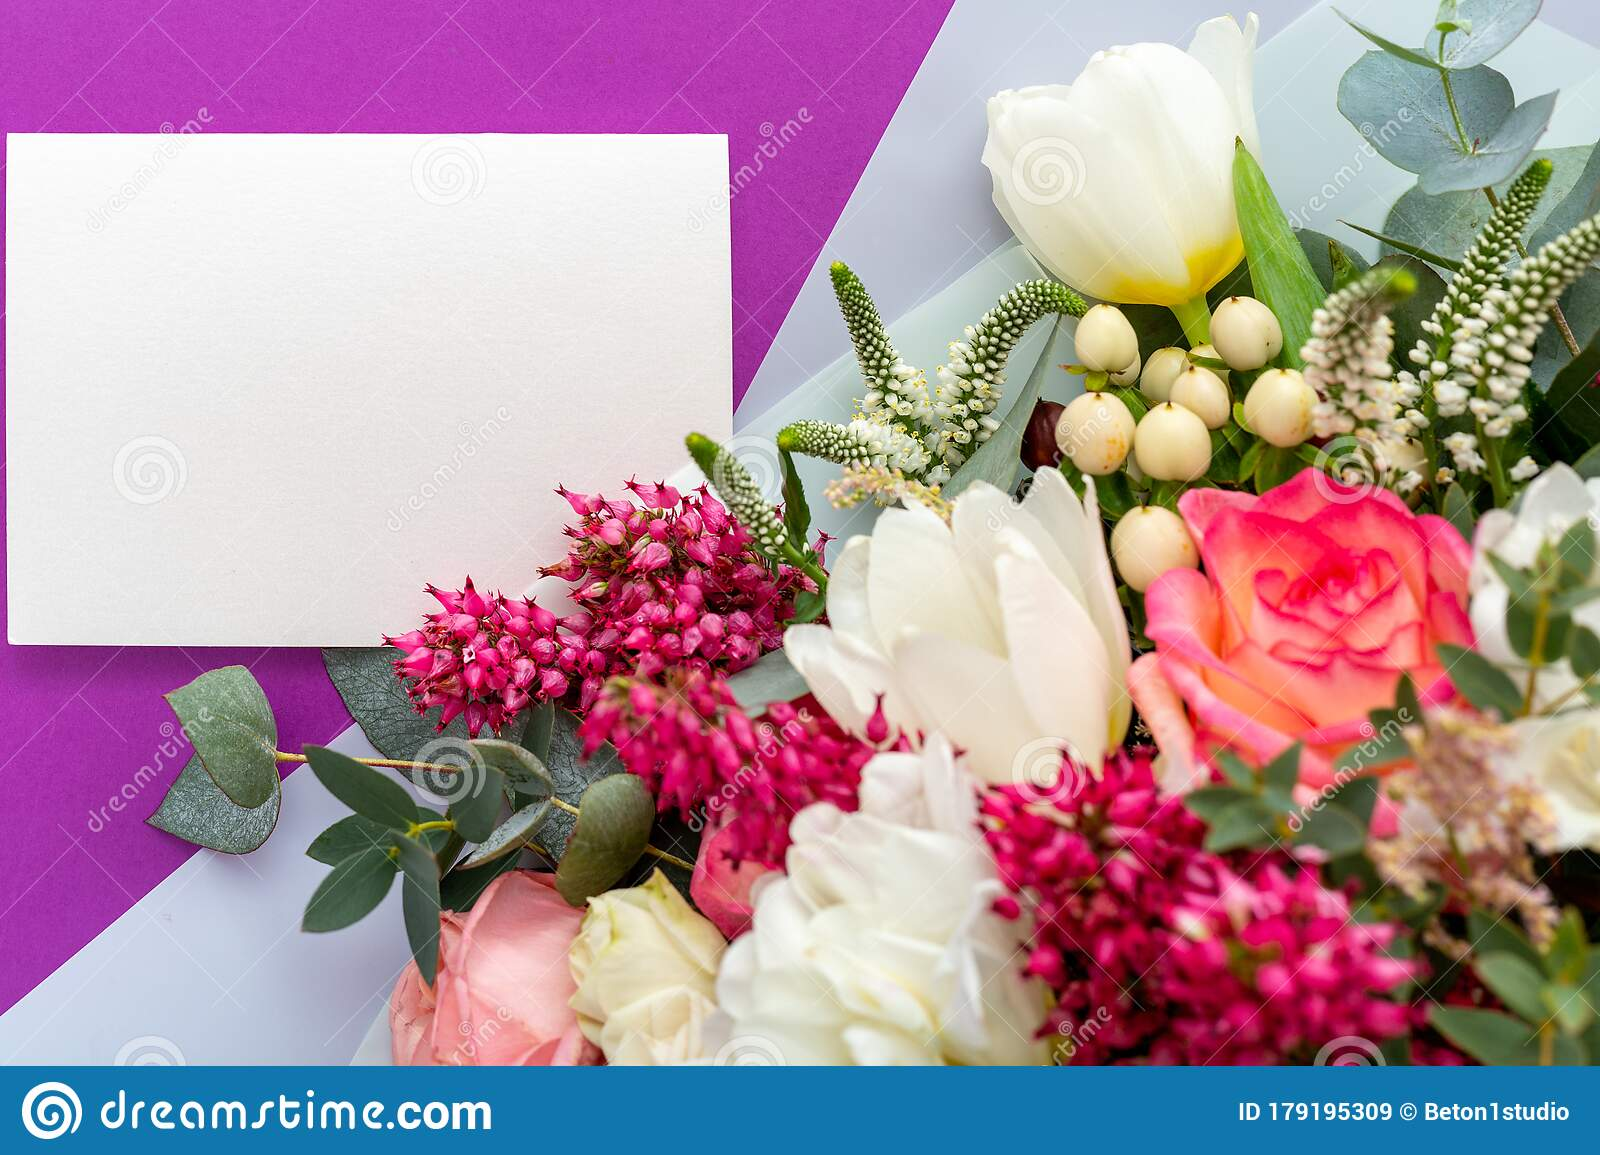 Flowers Mock Up Gift Card Congratulations Card In Bouquet Of Roses Tulips Eucalyptus On Purple Background White Blank Card Stock Image Image Of Design Empty 179195309